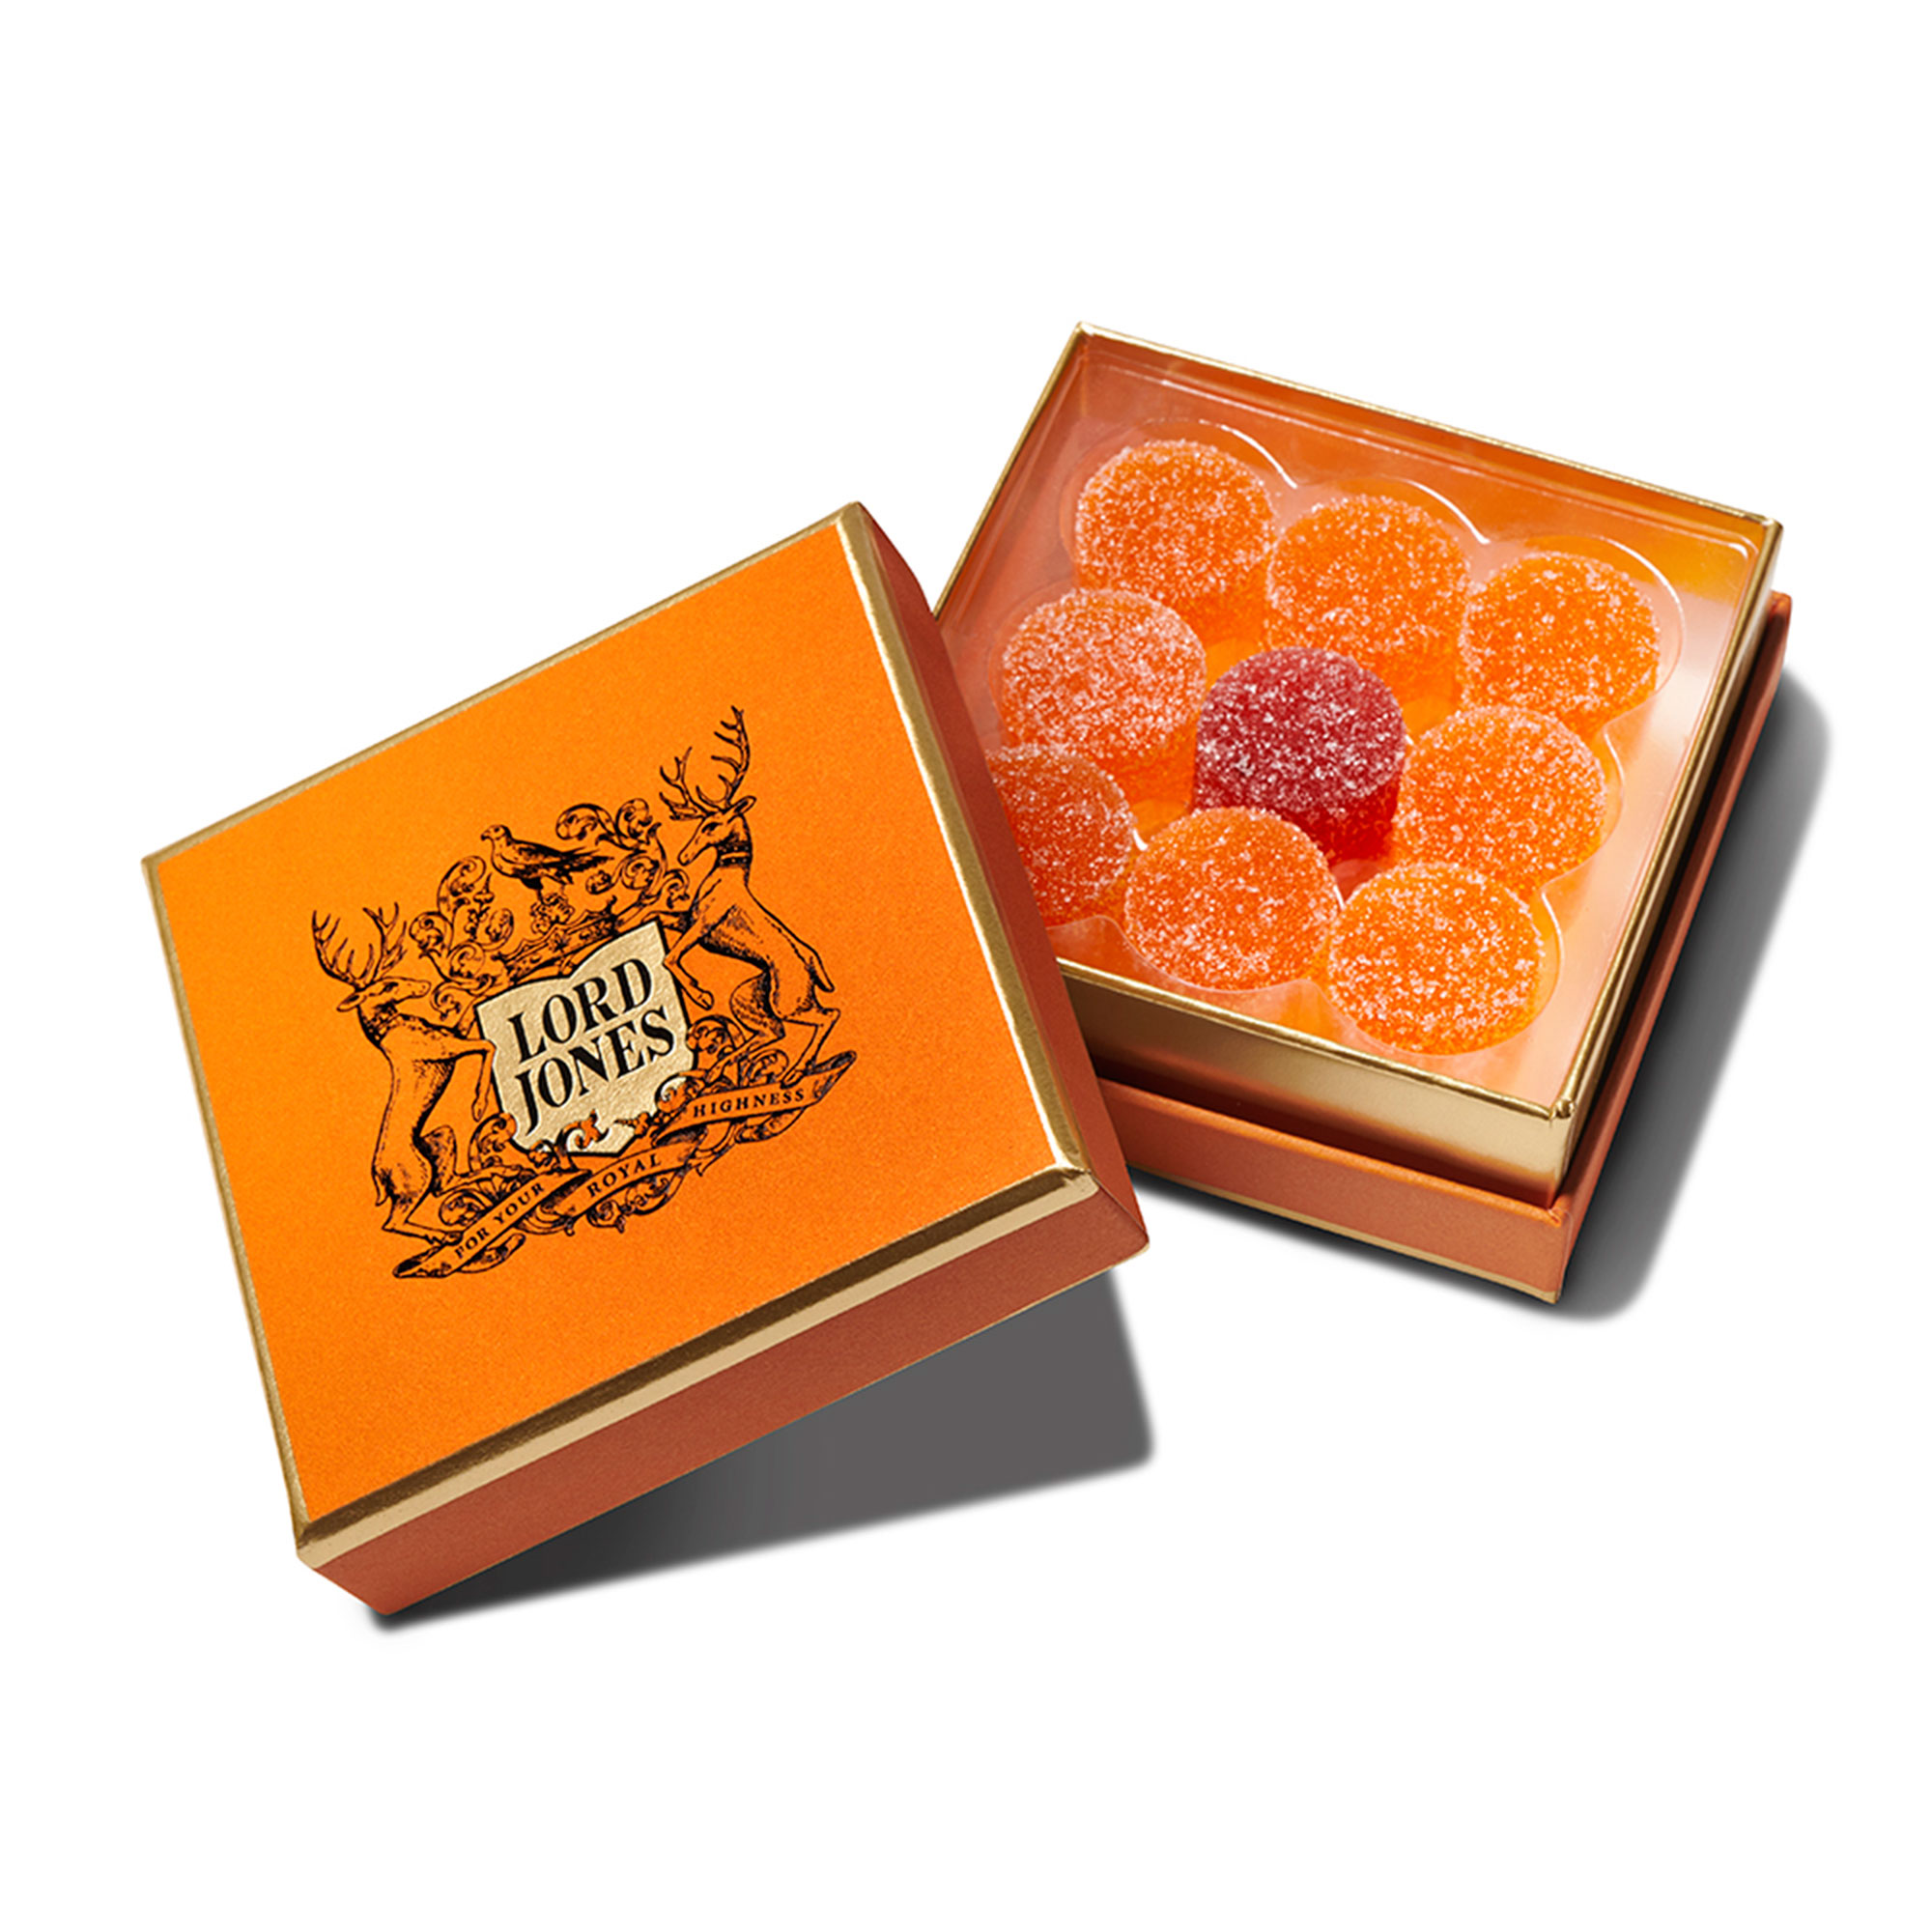 Valentine's Day Gift Guide 2019: Beauty and Fashion Ideas for the Lady in Your Life - Her favorite edibles get a romanic twist with this limited-edition nine-pack of the CBD brand's cult-favorite gummies. The Passion Fruit and Red Raspberry-flavored candies each pack 20 mg of non-psychoactive CBD and have a slightly tart flavor.